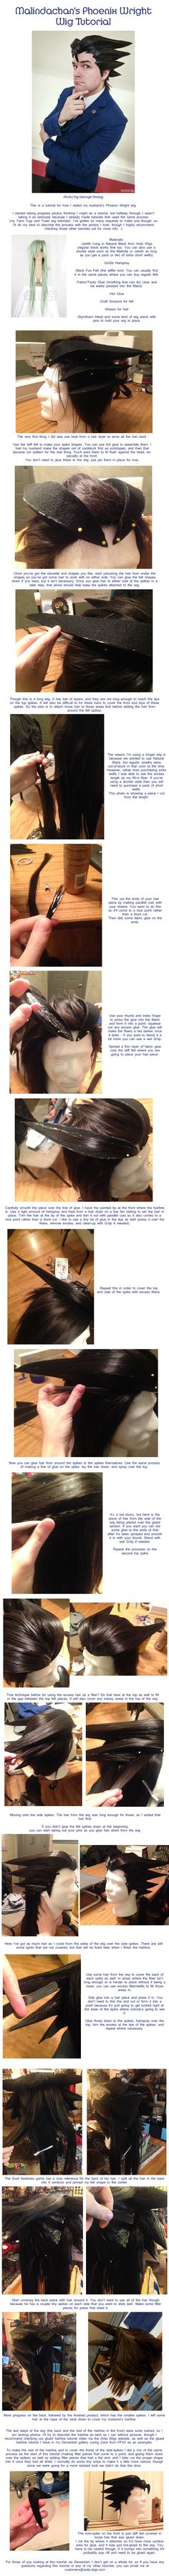 Using felt shapes to style - Phoenix Wright Wig Tutorial by Malindachan on deviantART